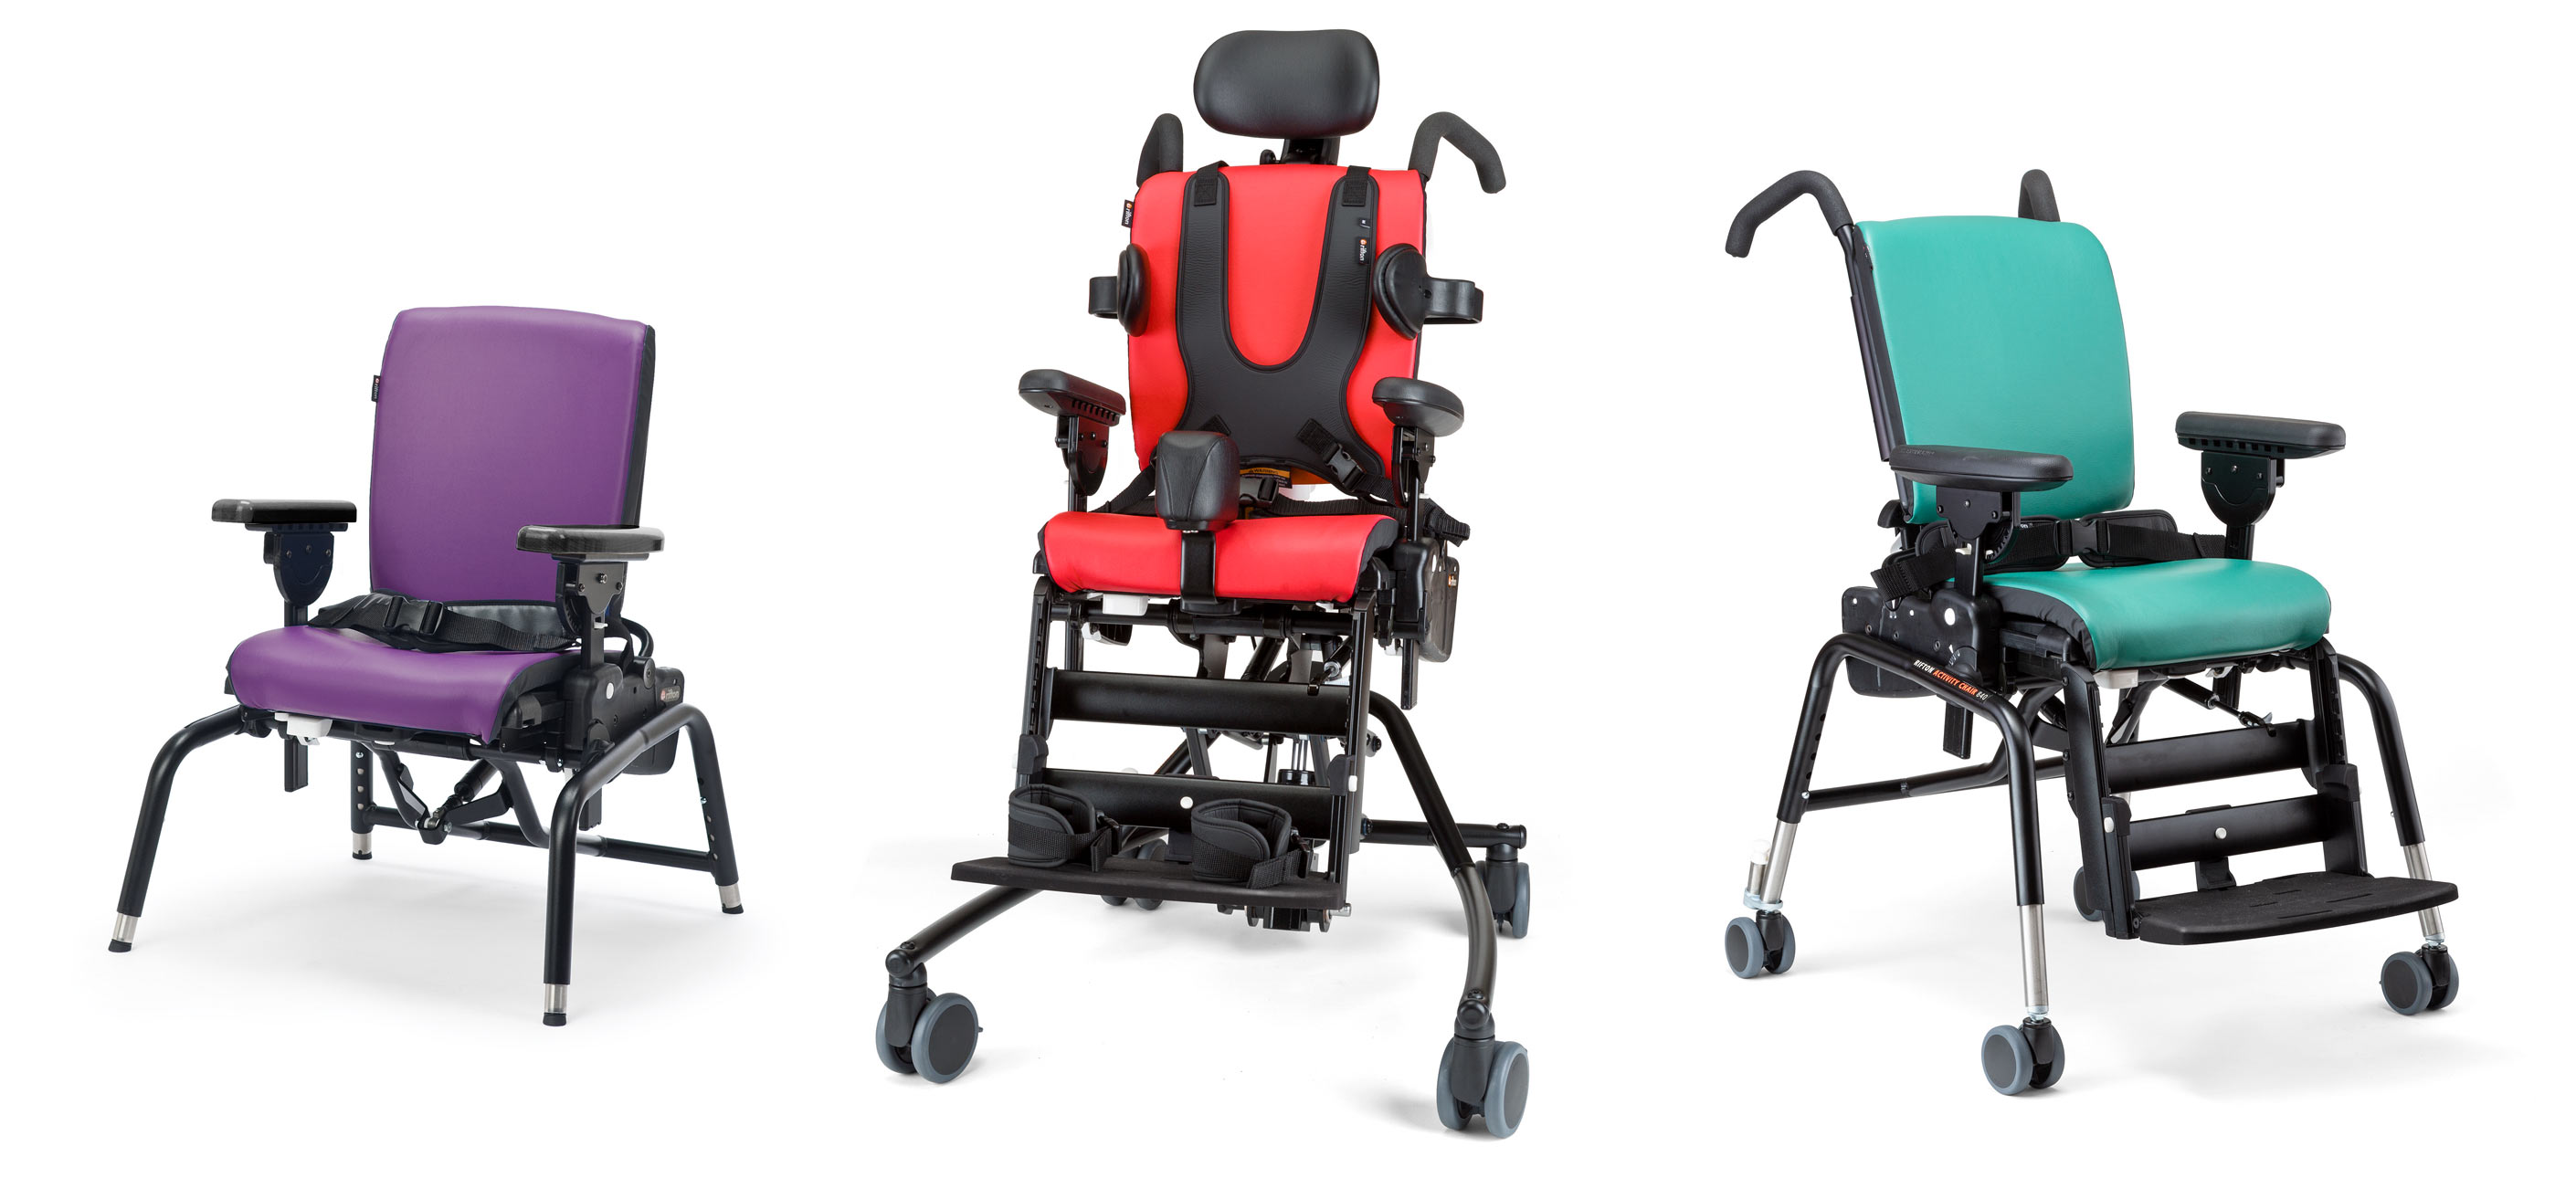 wheelchair new modern plastic chairs rifton activity chair a revolution in active seating